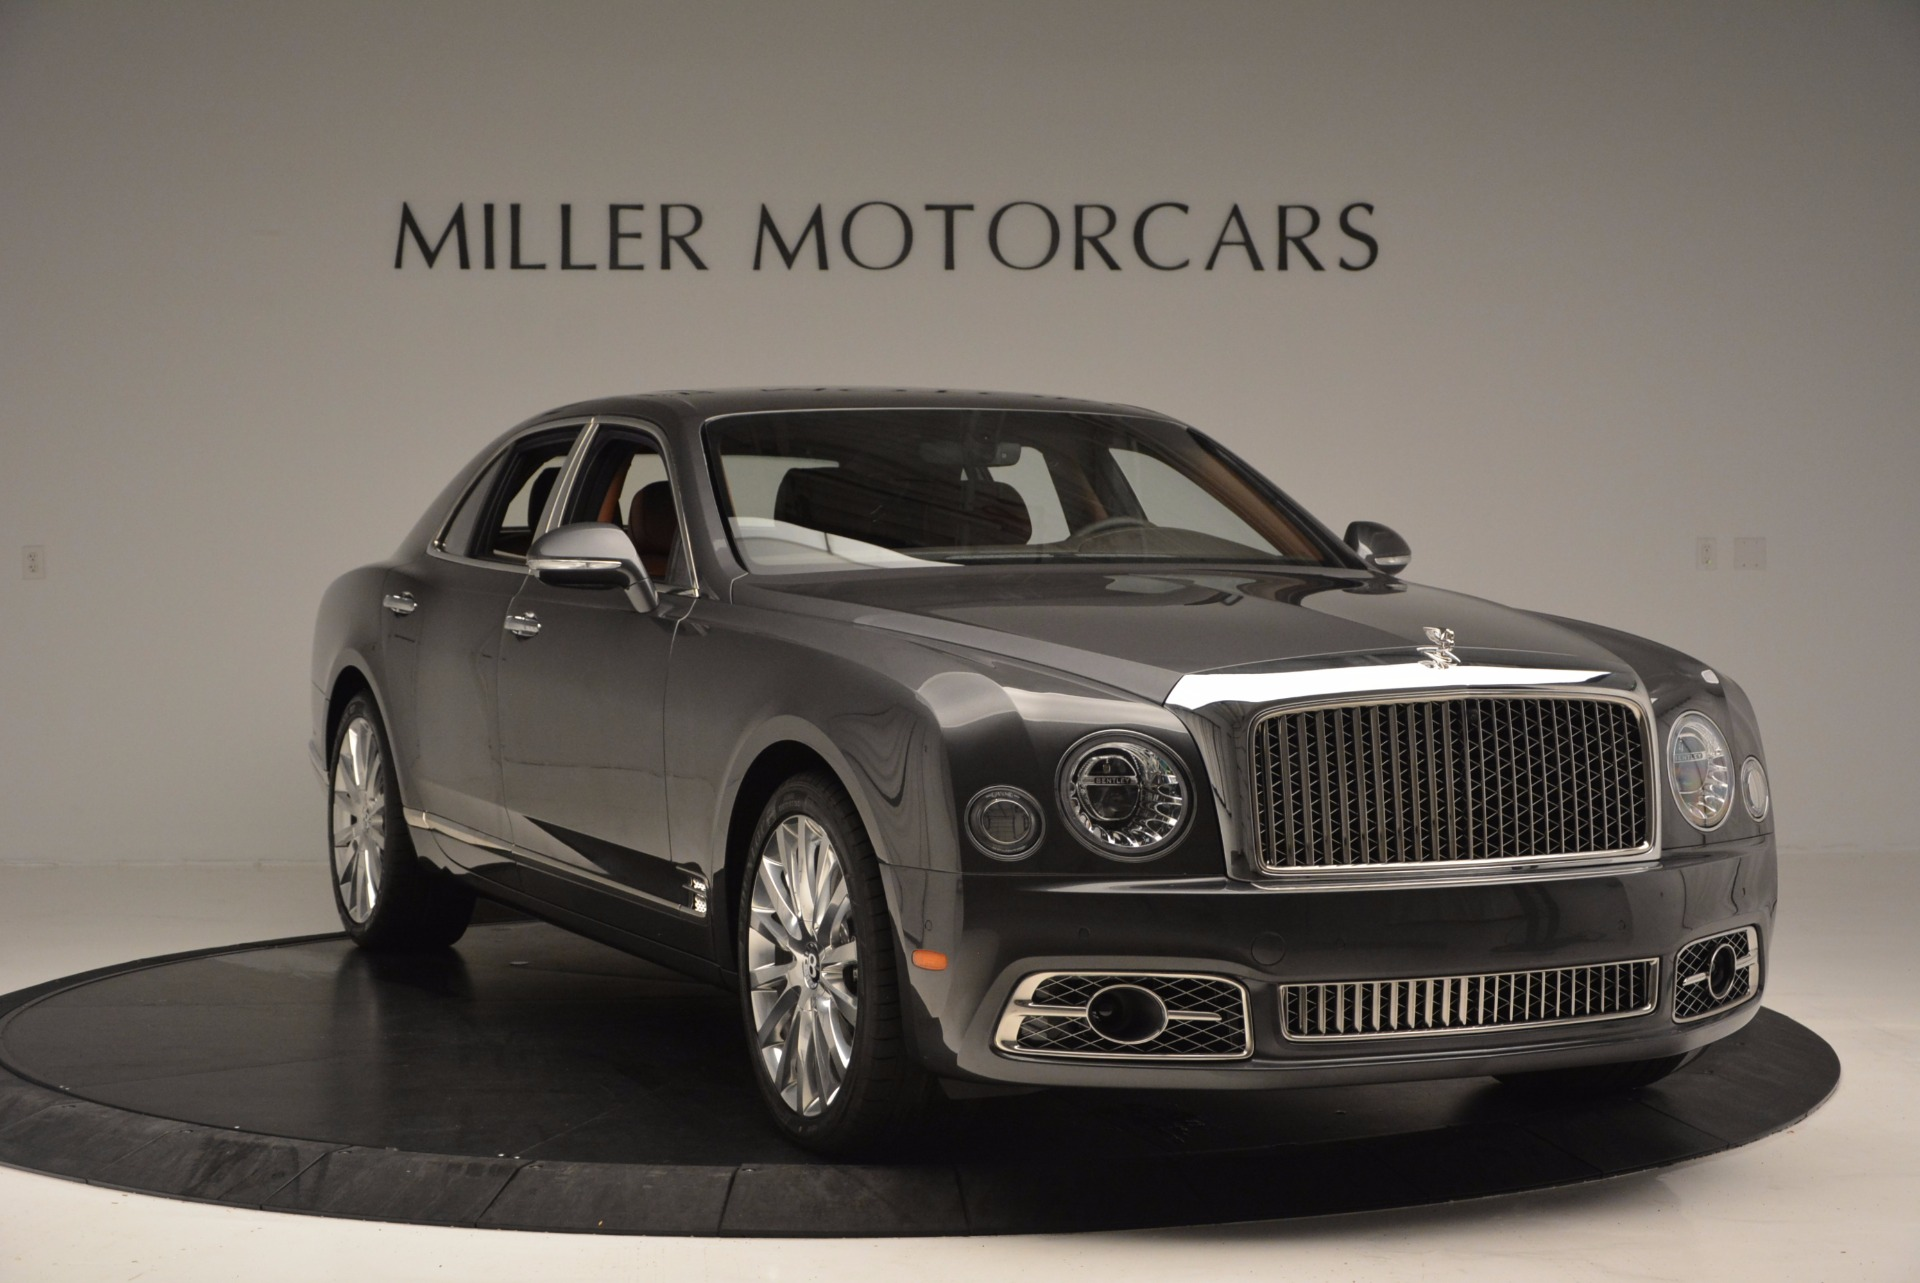 New 2017 Bentley Mulsanne  For Sale In Westport, CT 508_p11